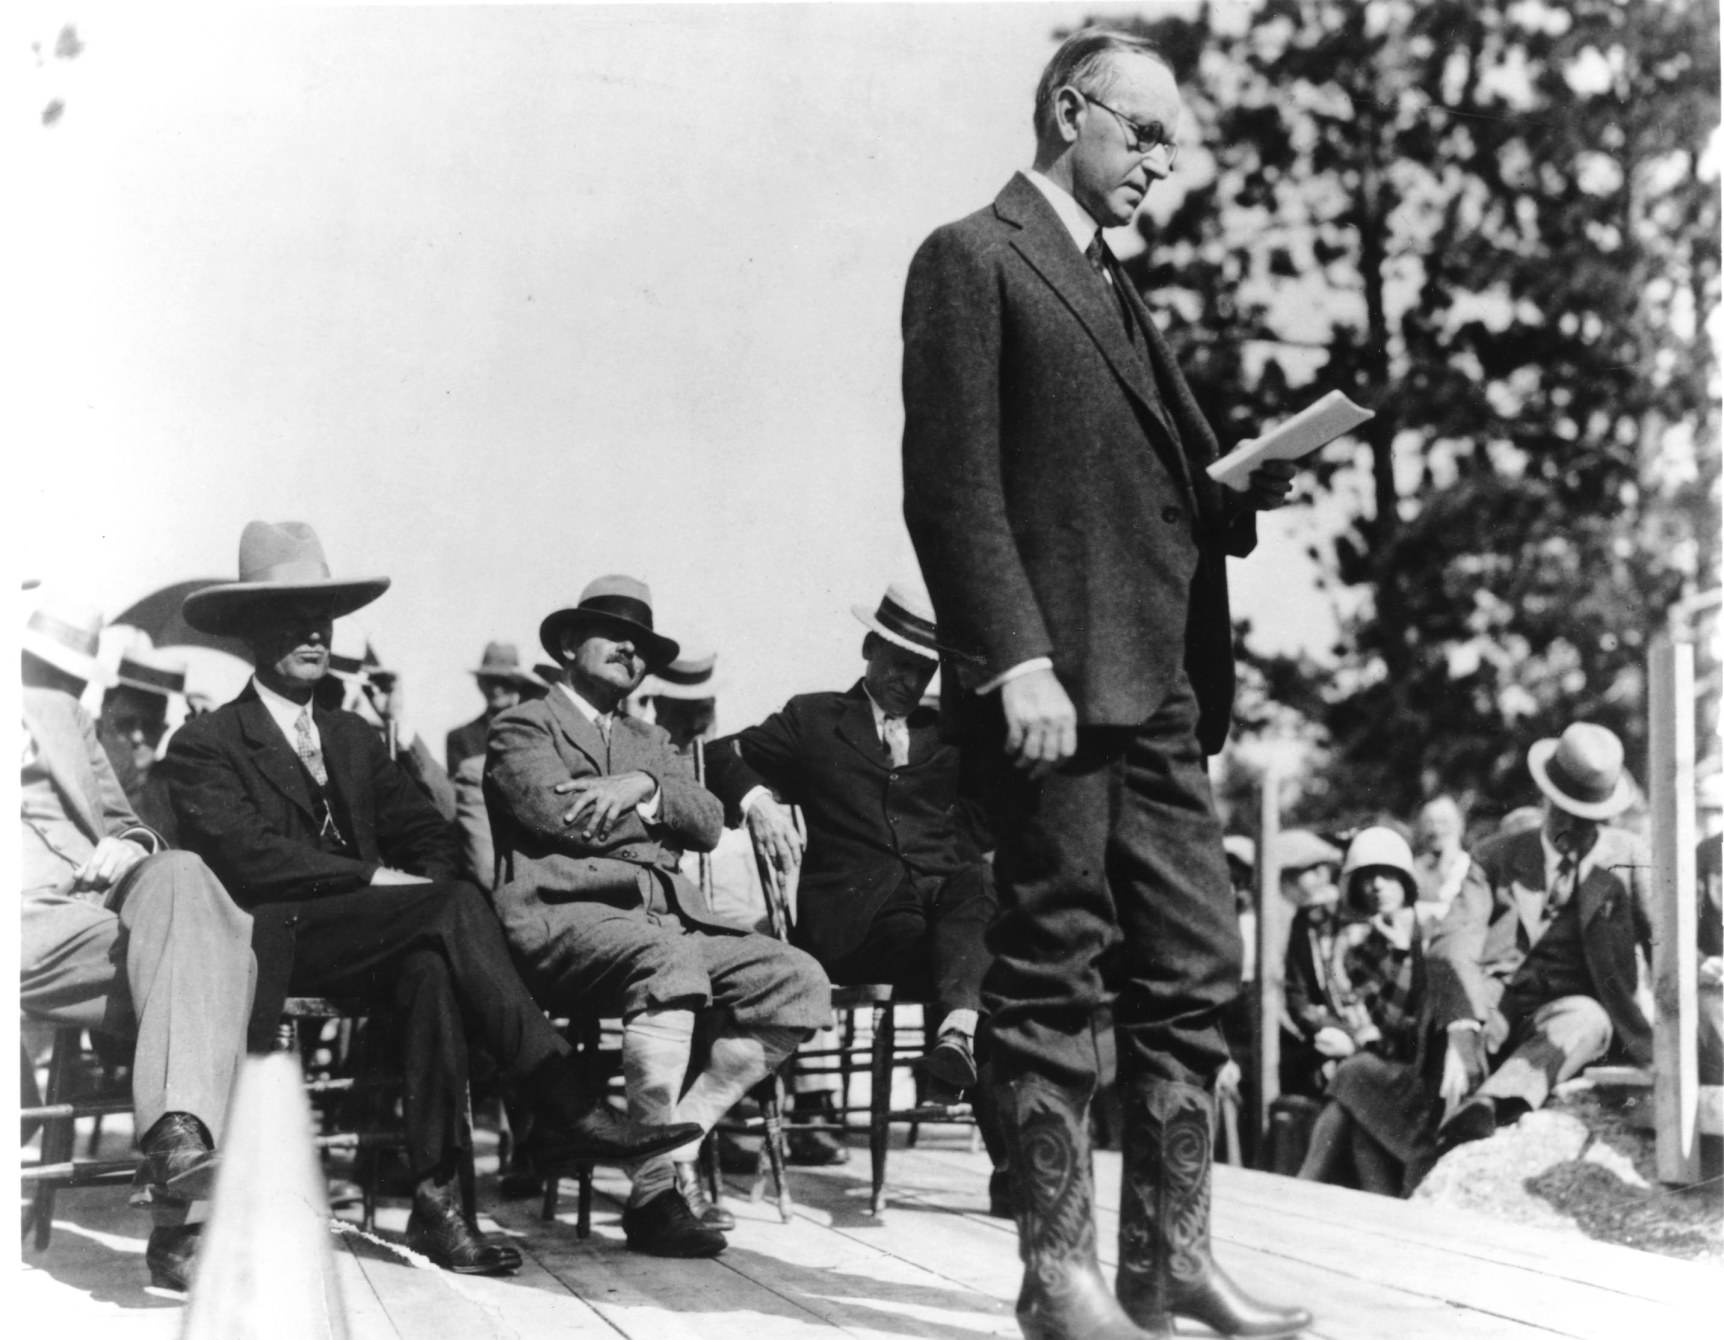 President Coolidge dedicates the site that will be the Mount Rushmore Memorial, August 10, 1927. Flamboyant sculptor, Gutzon Borglum is seated cross-legged directly behind the standing President.